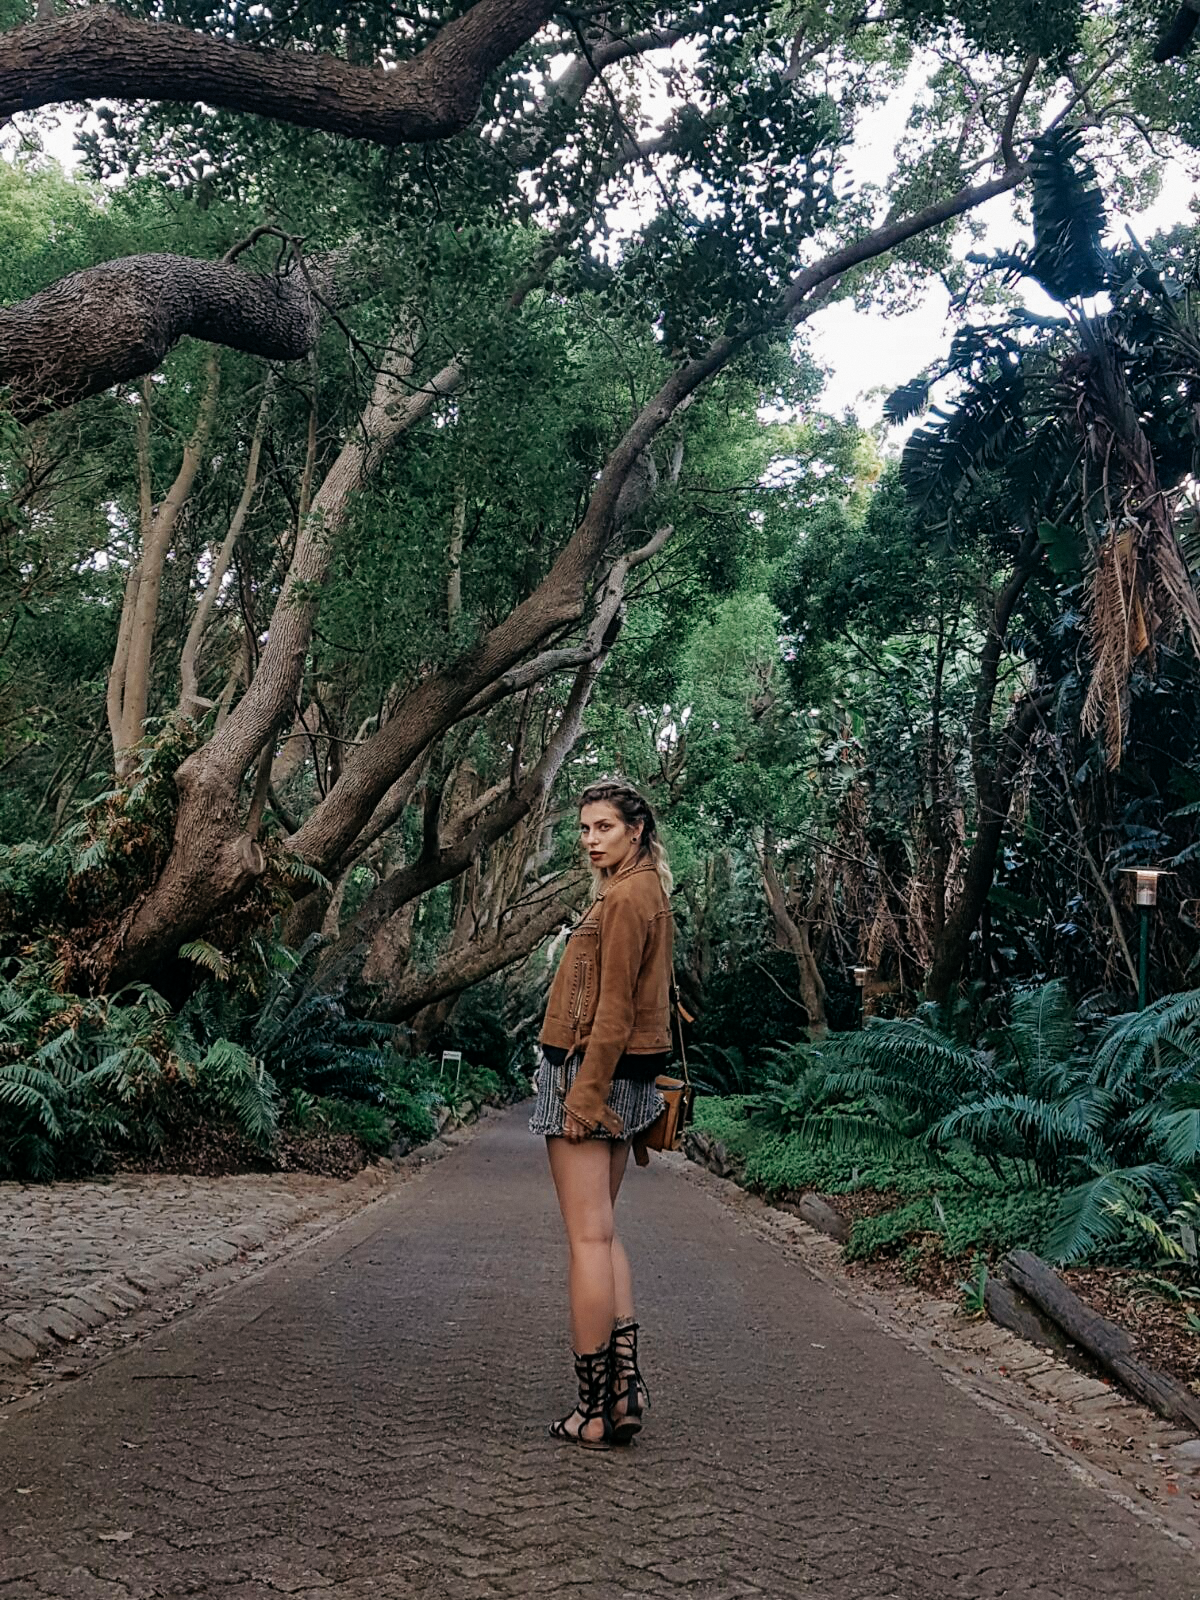 Masha Sedgwick | Germany Berlin | Blogger | Fashion | Travel | Capetown | 10 Things